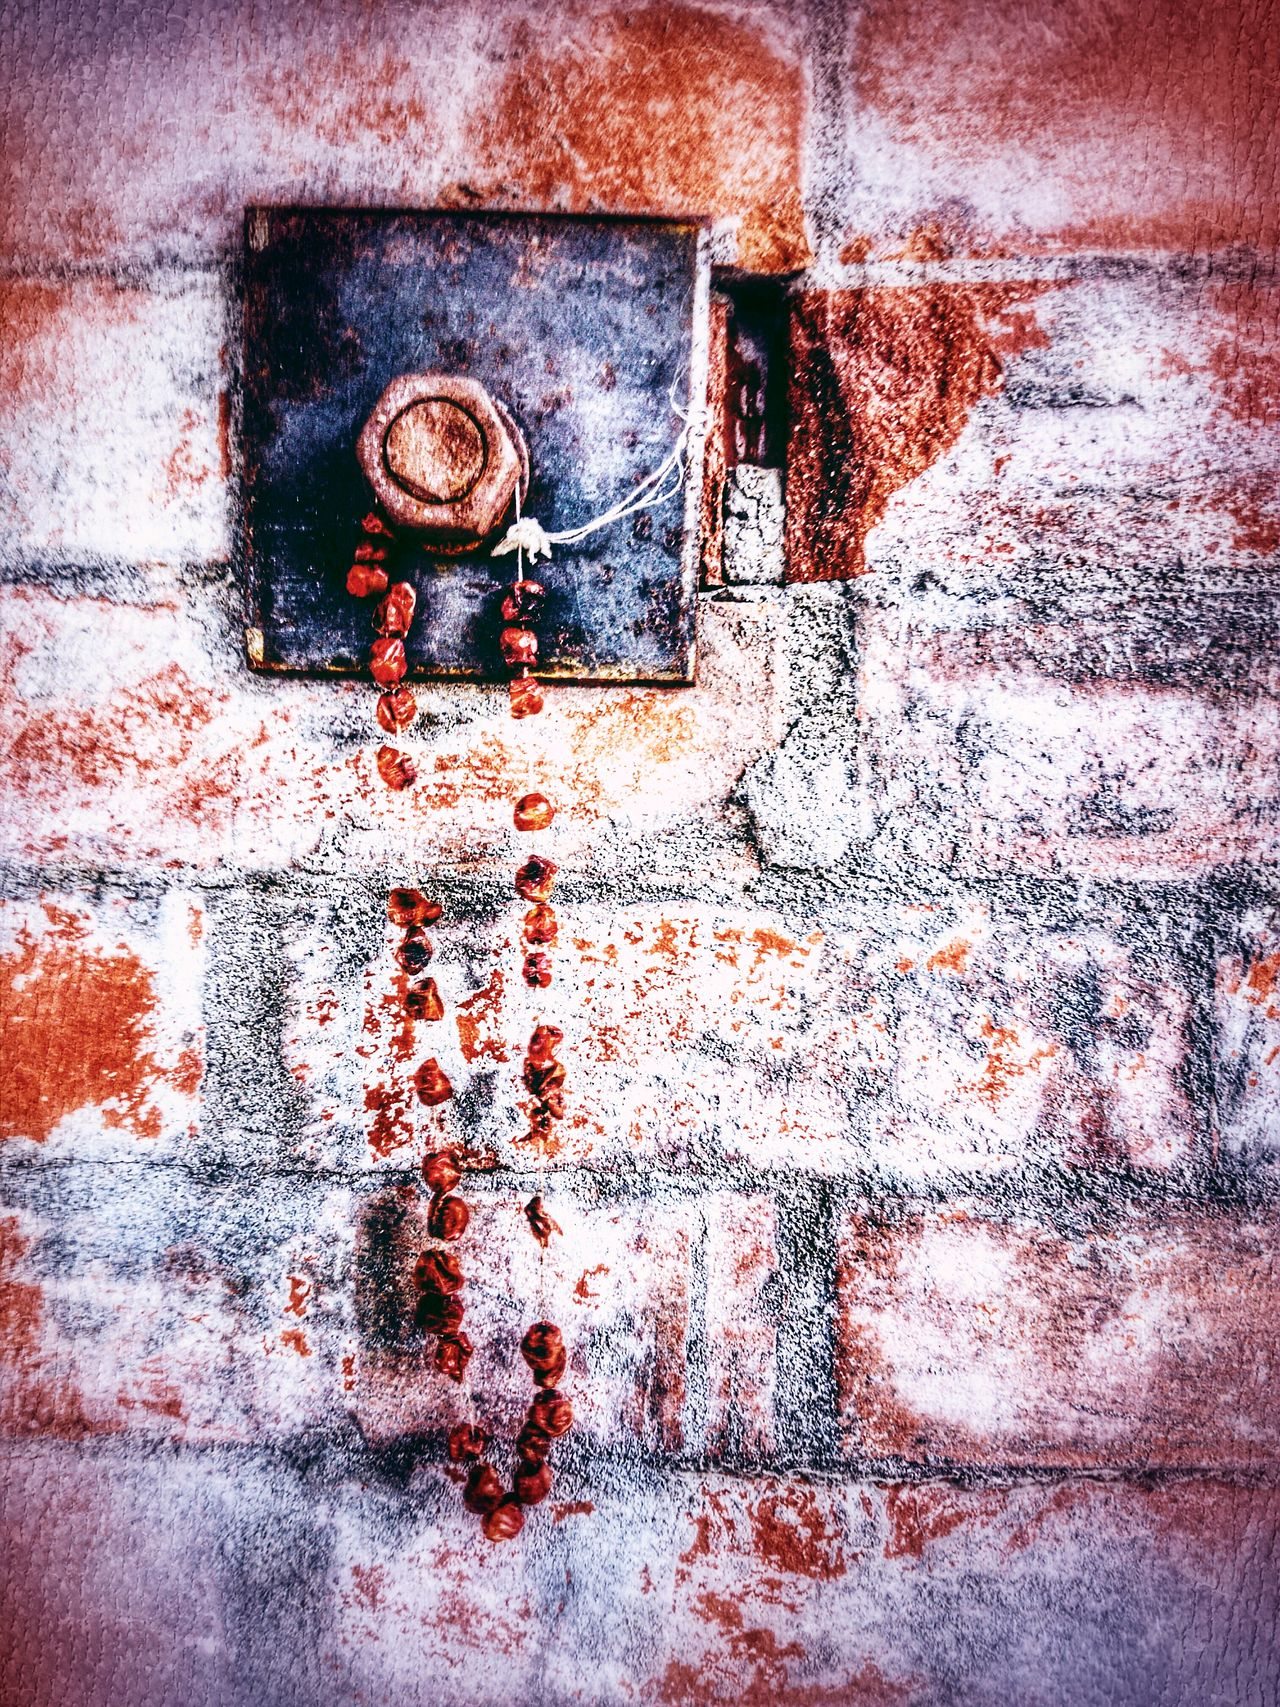 Full Frame Brick Wall Brick Building Auto Post Production Filter Necklace Bolt Nut Rust Rusty Berries Backgrounds Old House Red